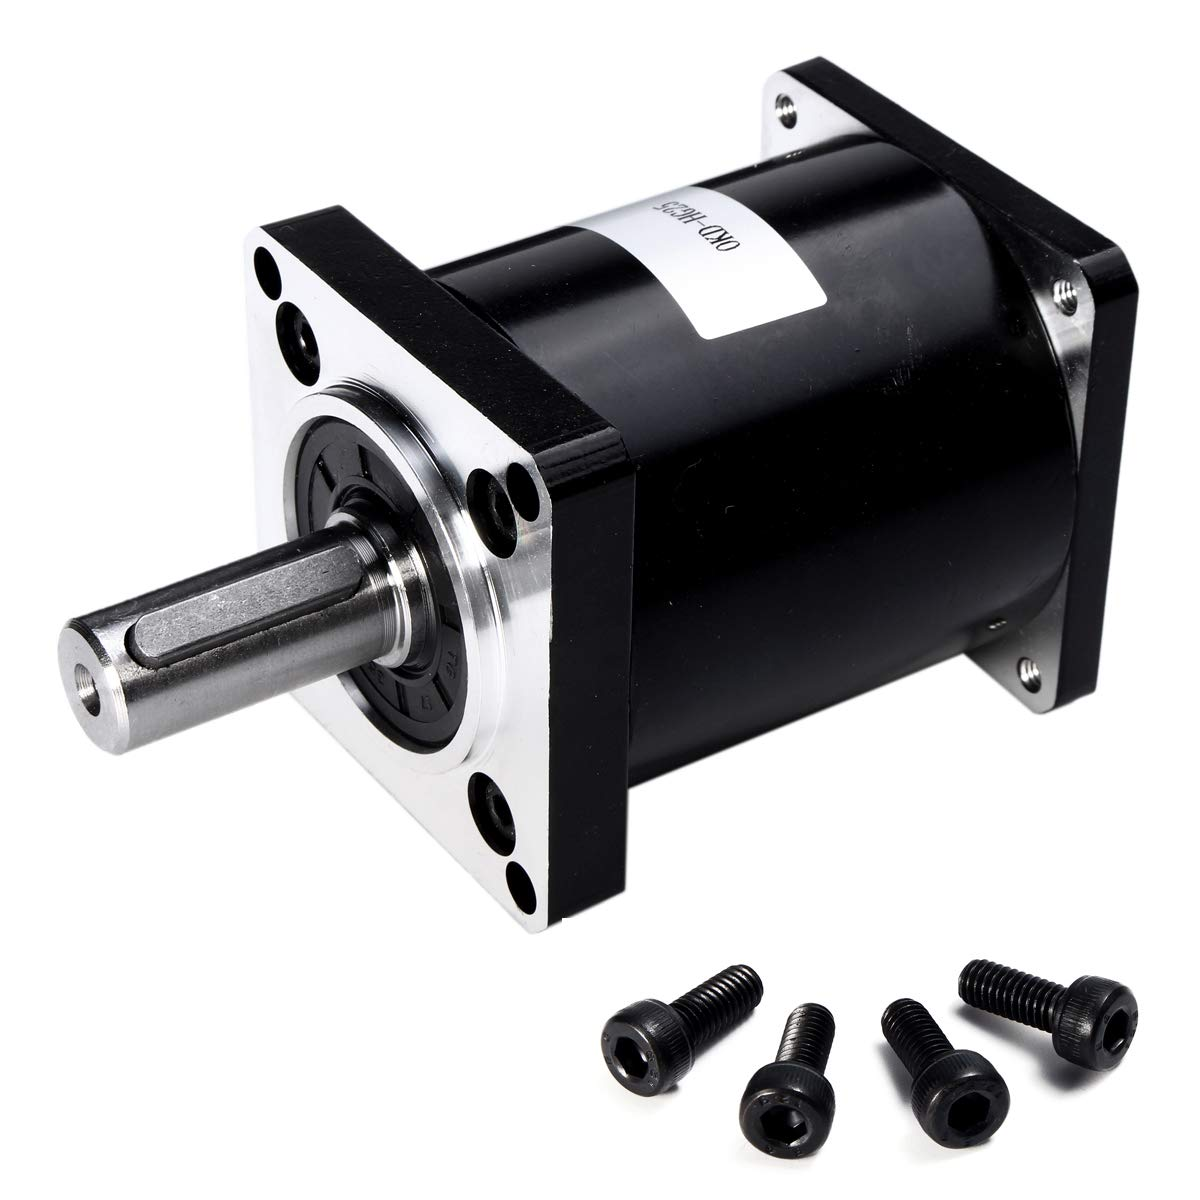 CoCocina 57mm Nema 23 Planetary Reduction Gear Motor Ratio 4:1 5:1 10:1 15:1 20:1 25:1 30:1 40:1 50:1 100:1-30:1 by CoCocina